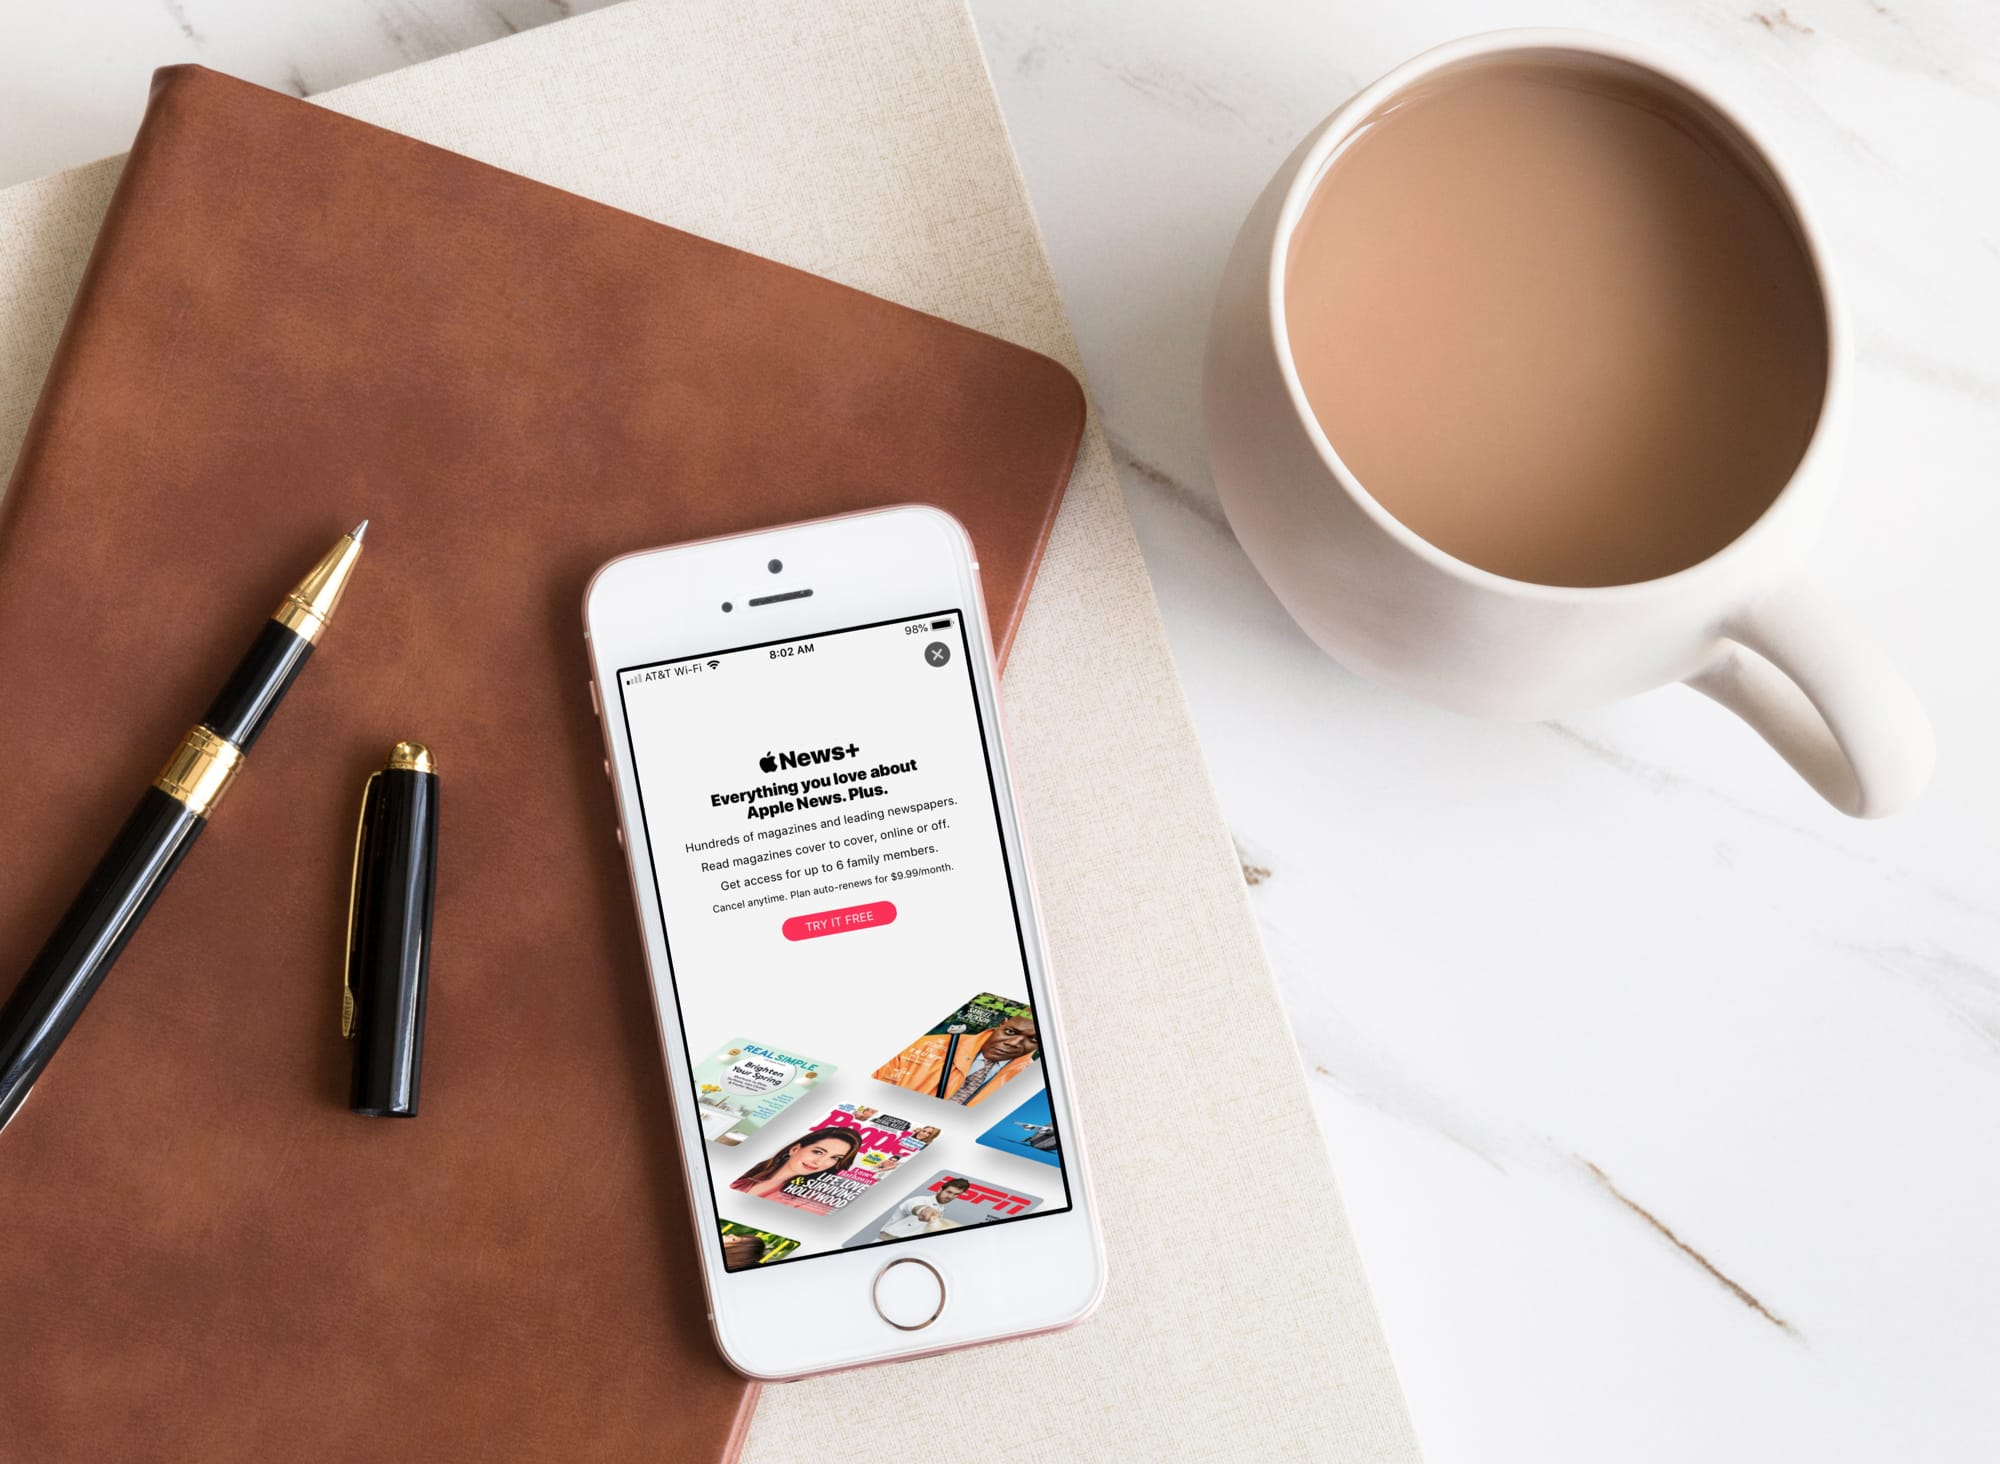 Some publishers unhappy with the revenue from Apple News+